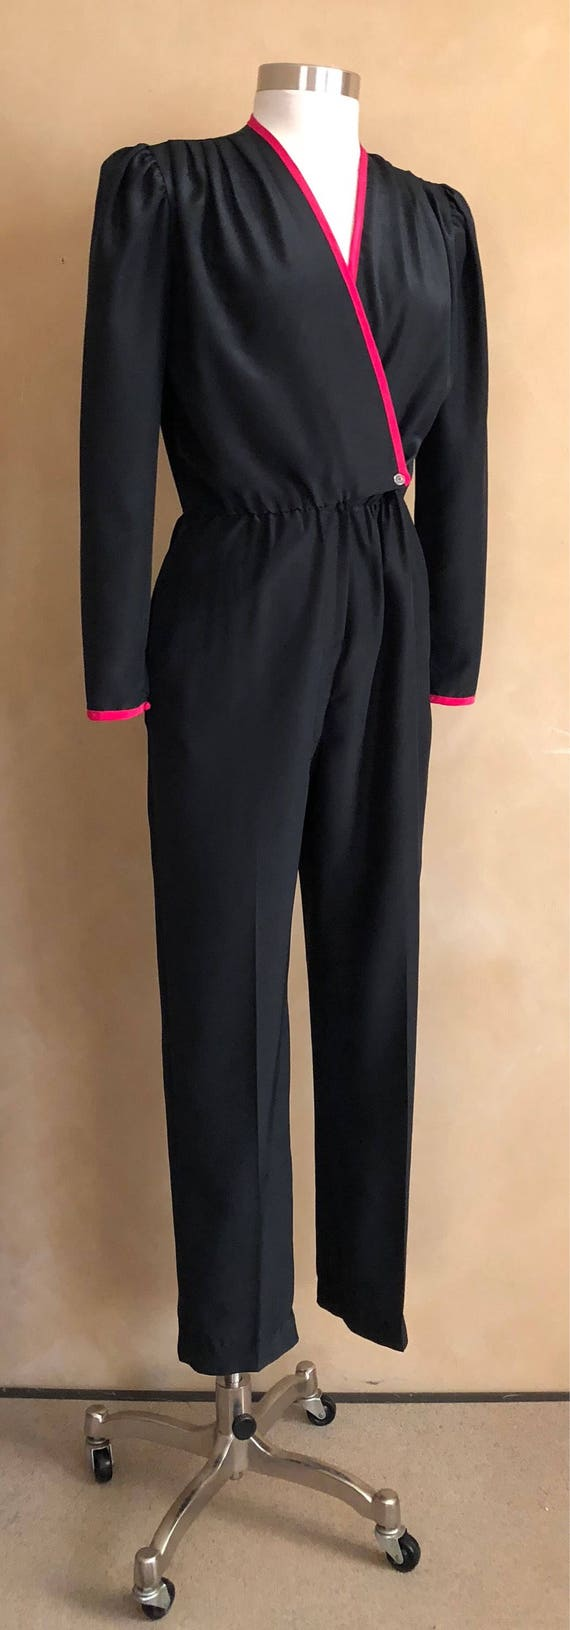 Vintage Jumpsuit 70's Black with Pink Trim